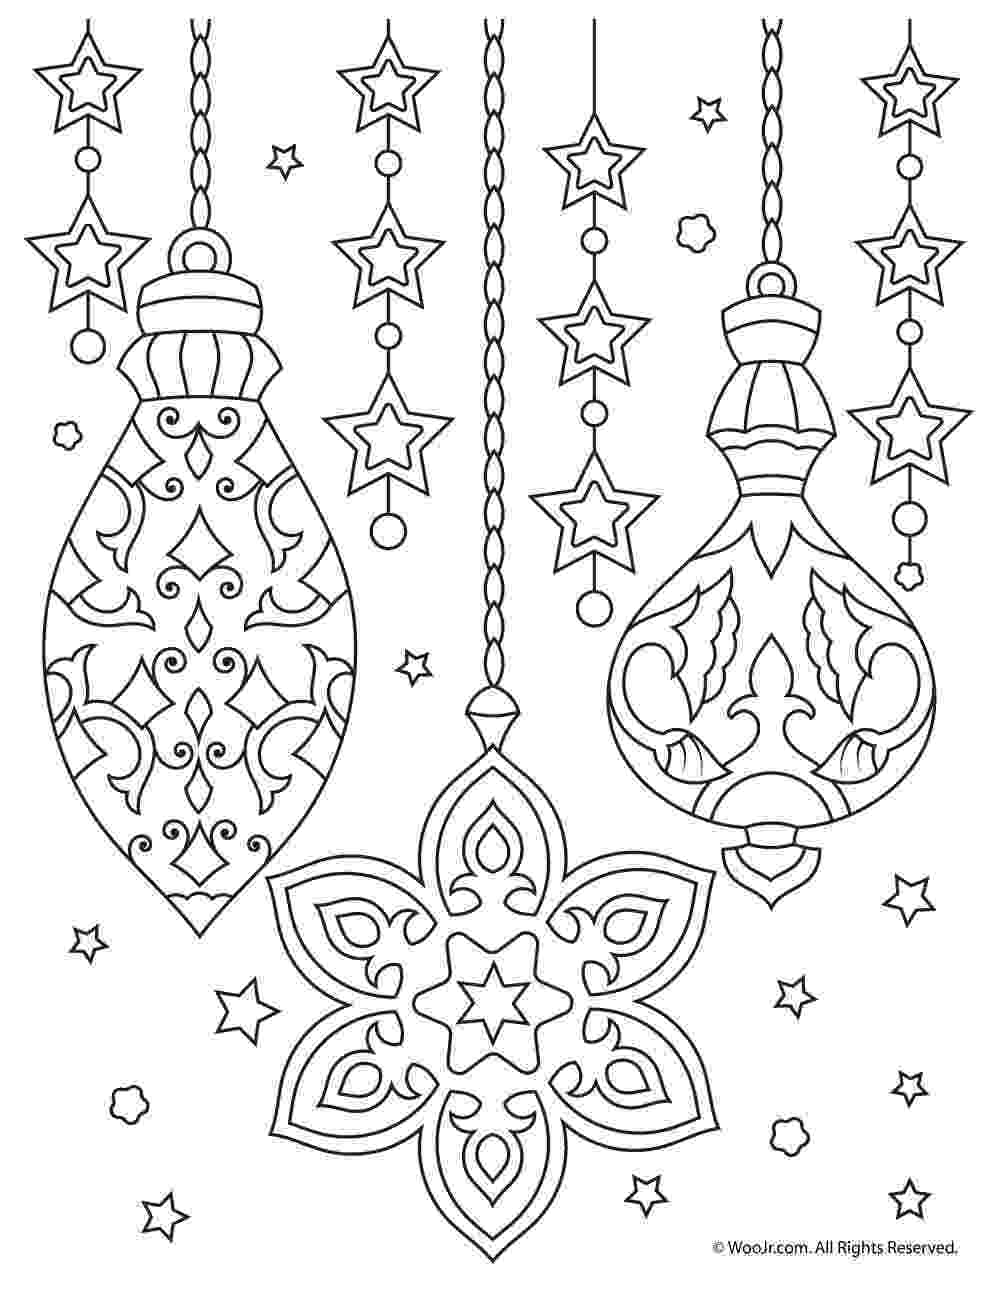 christmas colouring pages for adults printable 21 christmas printable coloring pages adults pages colouring printable for christmas